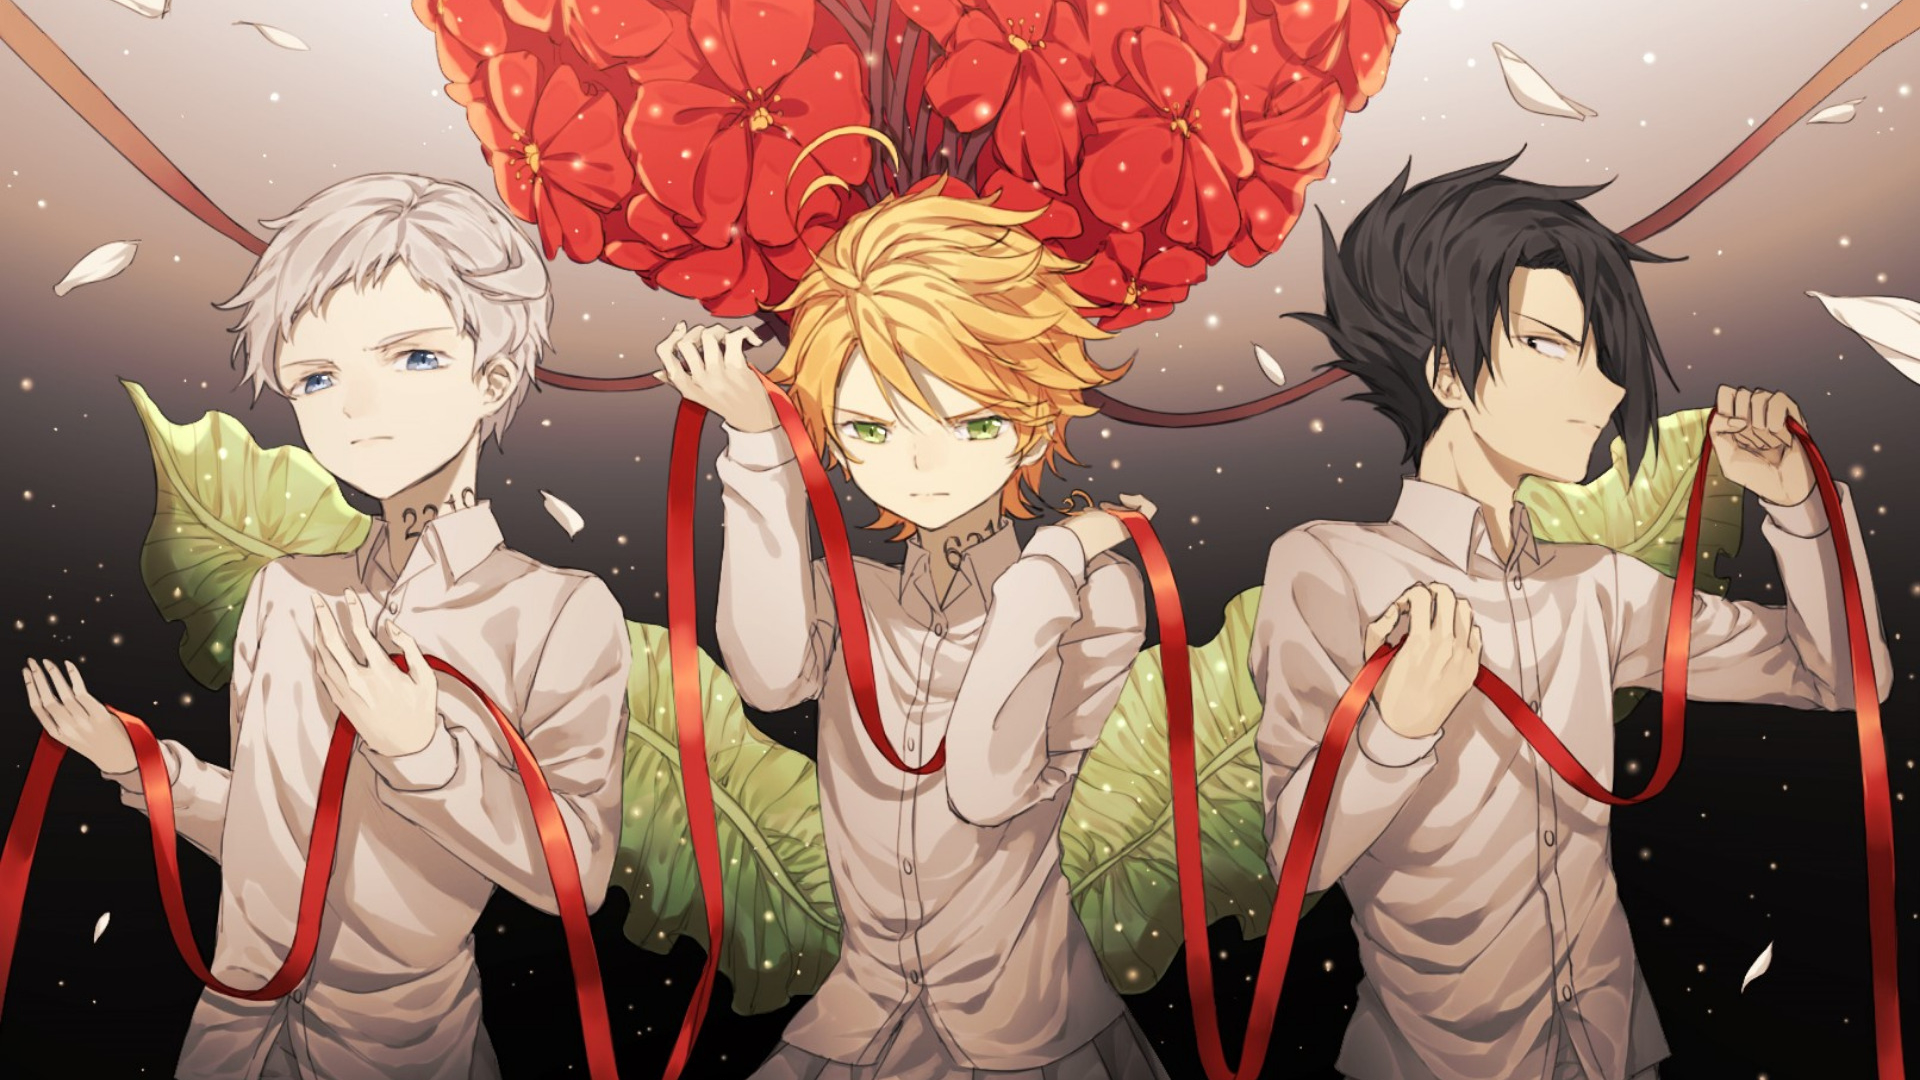 Wallpaper Of Anime Emma Norman Ray The Promised Neverland